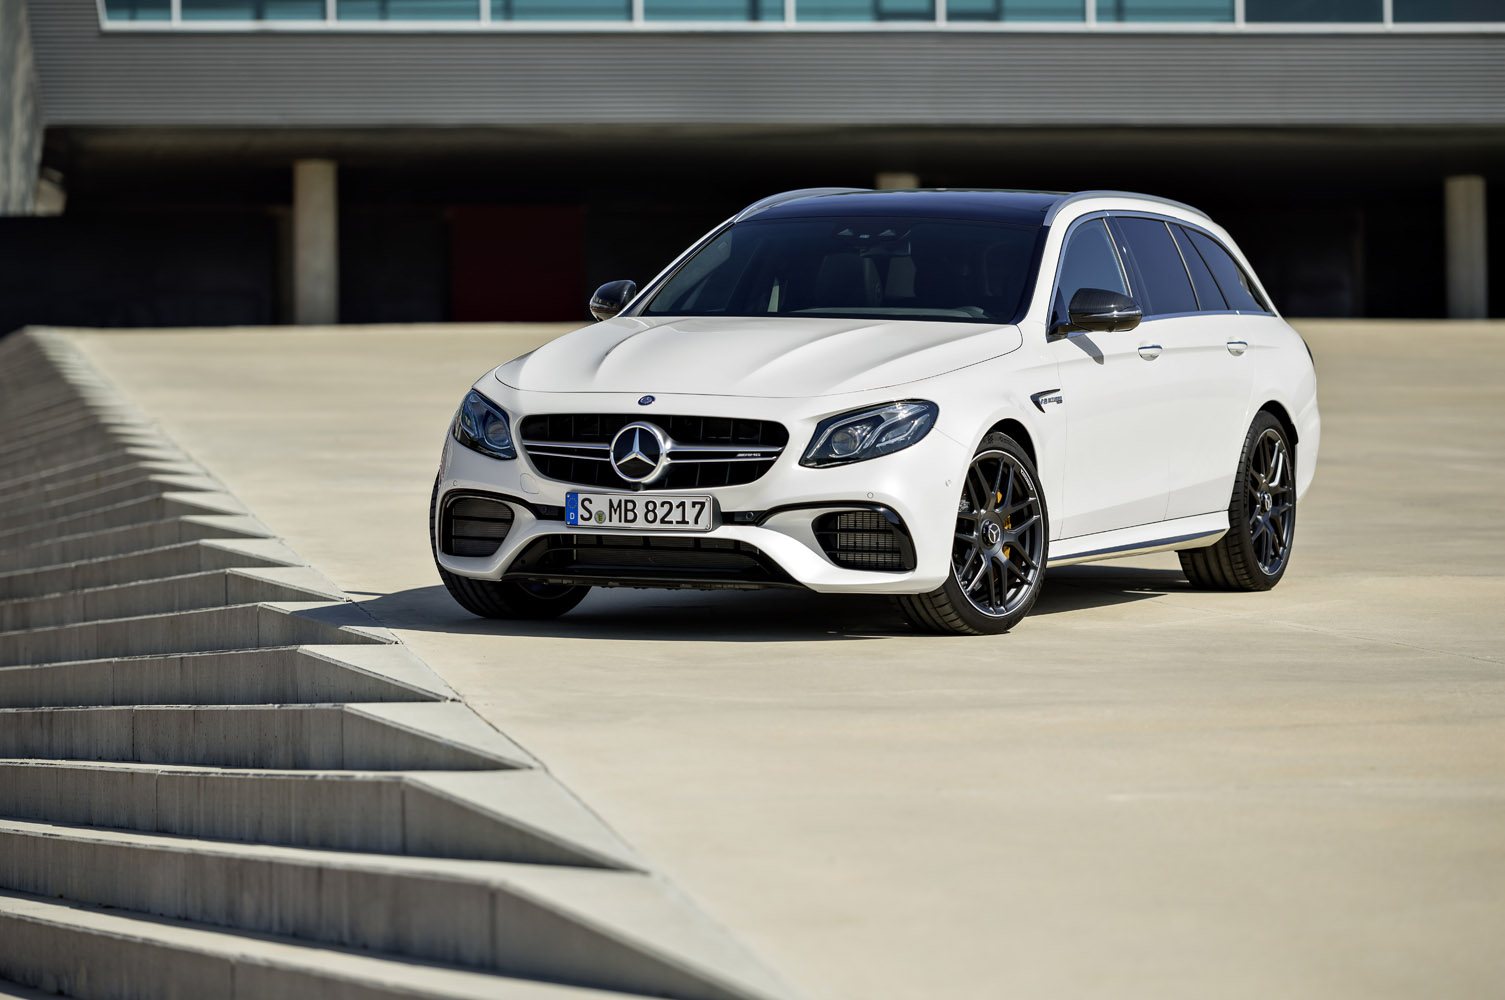 Mercedes-AMG E 63 S 4MATIC+ T-Modell, diamantweiß;Kraftstoffverbrauch kombiniert: 9,1 l/100 km, CO2-Emissionen kombiniert: 206 g/km* Mercedes-AMG E 63 S 4MATIC+ Estate, diamond white;Fuel consumption combined: 9.1 l/100 km; combined CO2 emissions: 206 g/km*